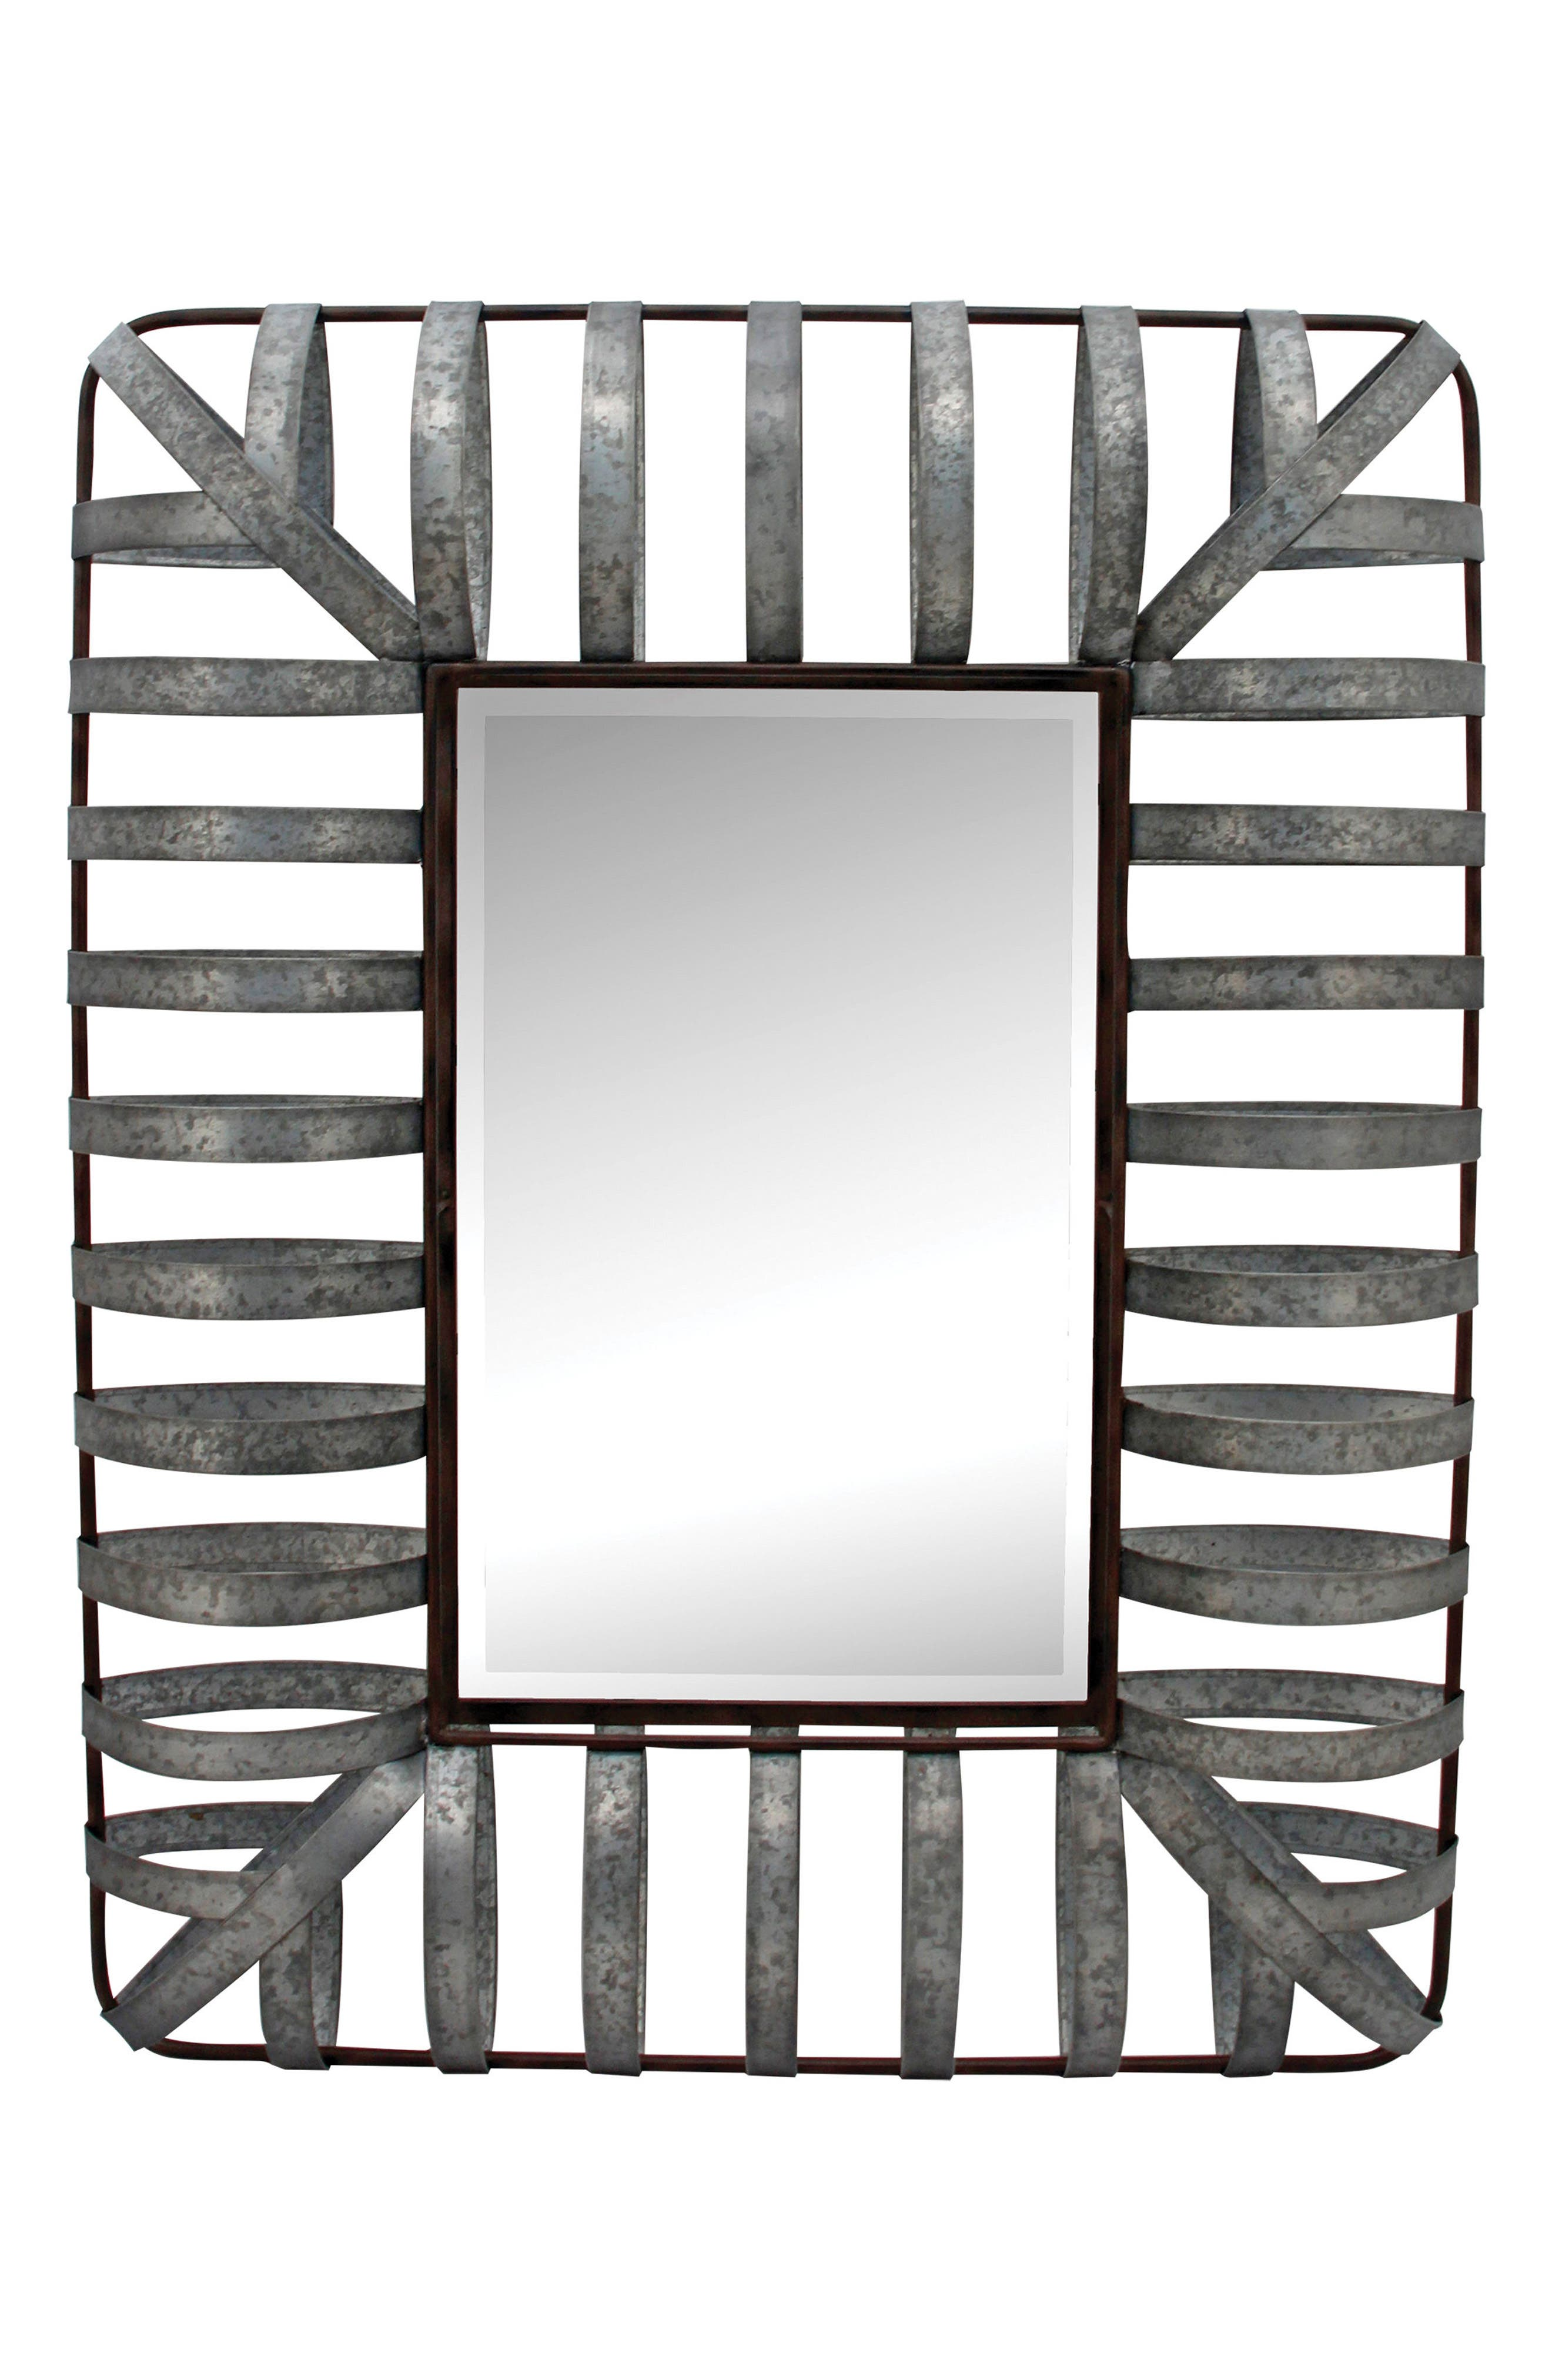 Main Image - Foreside Iron Framed Mirror